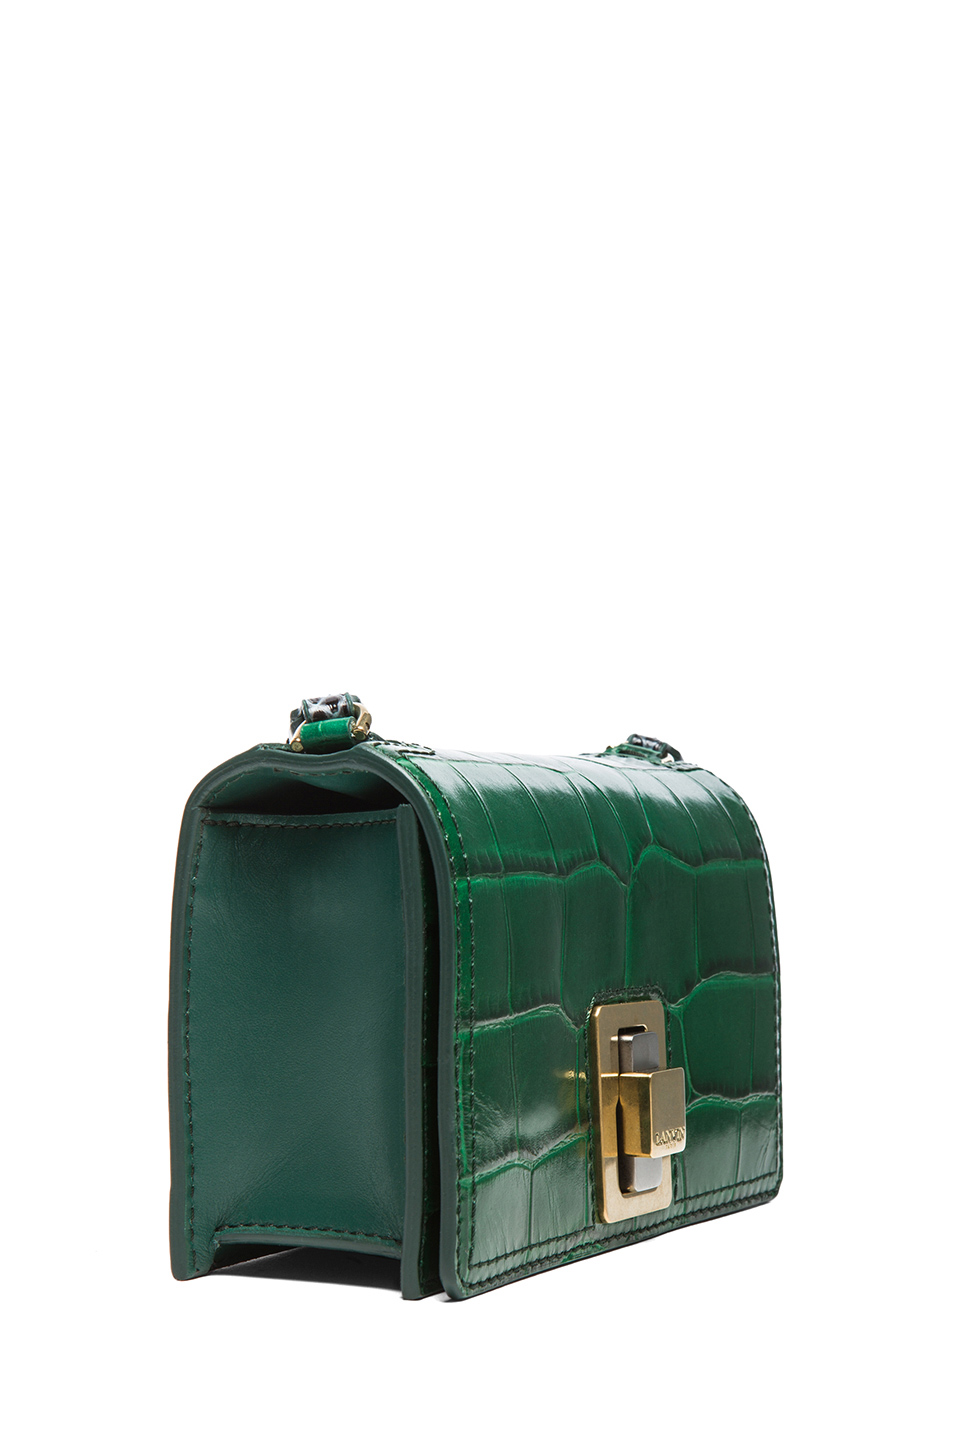 Lanvin | Mini Rigid Bag in Emerald Green